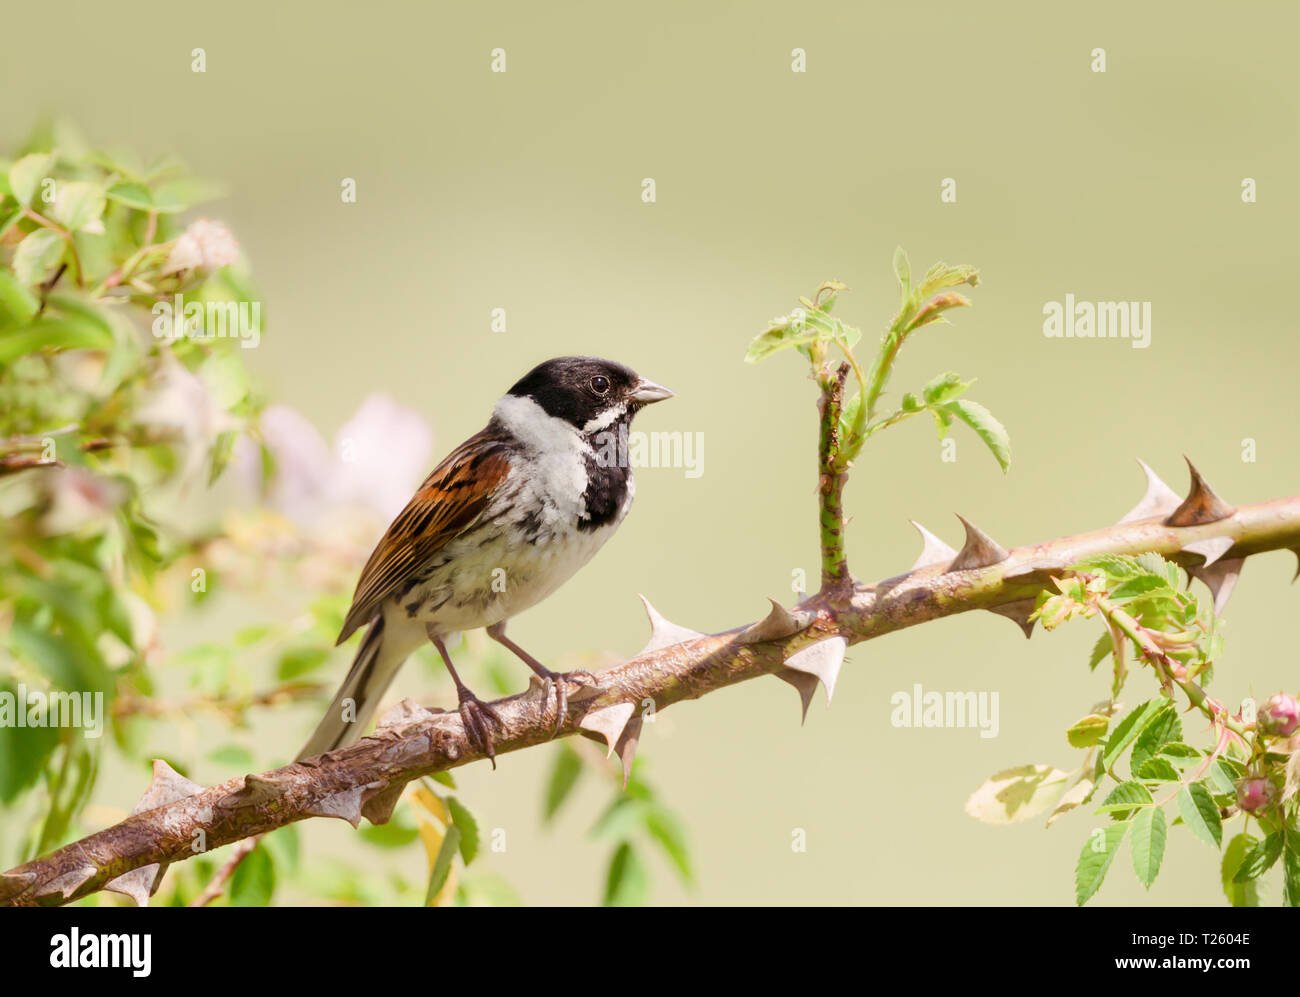 Close Up Of A Common Reed Bunting Emberiza Schoeniclus Perched In A Rose Bush Uk Stock Photo Alamy